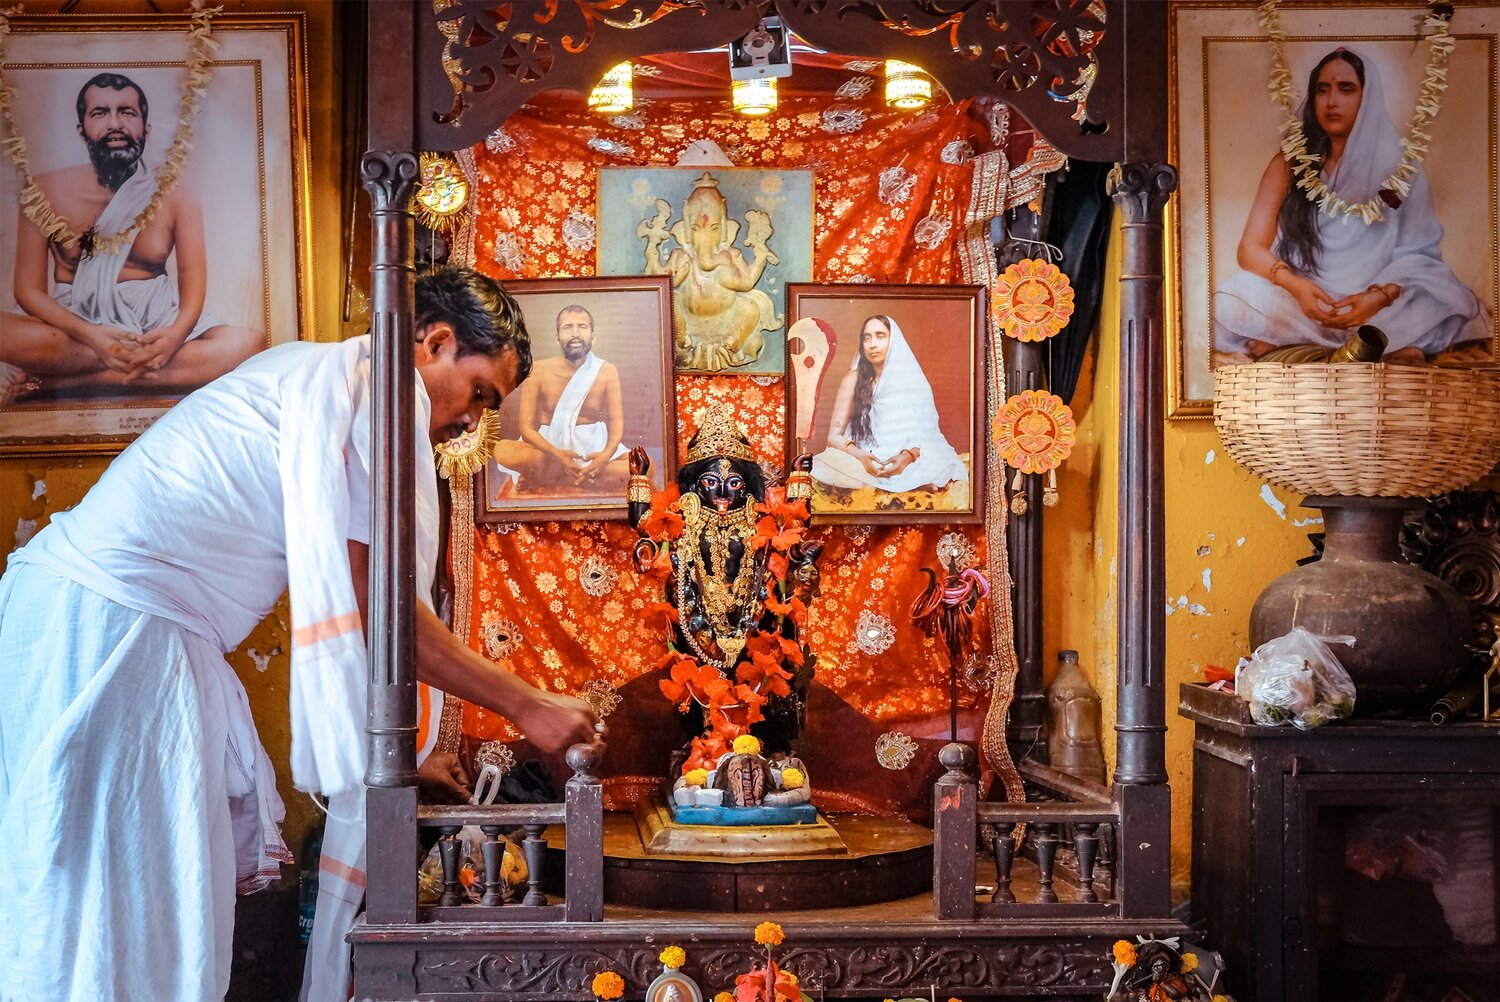 The Kali temple